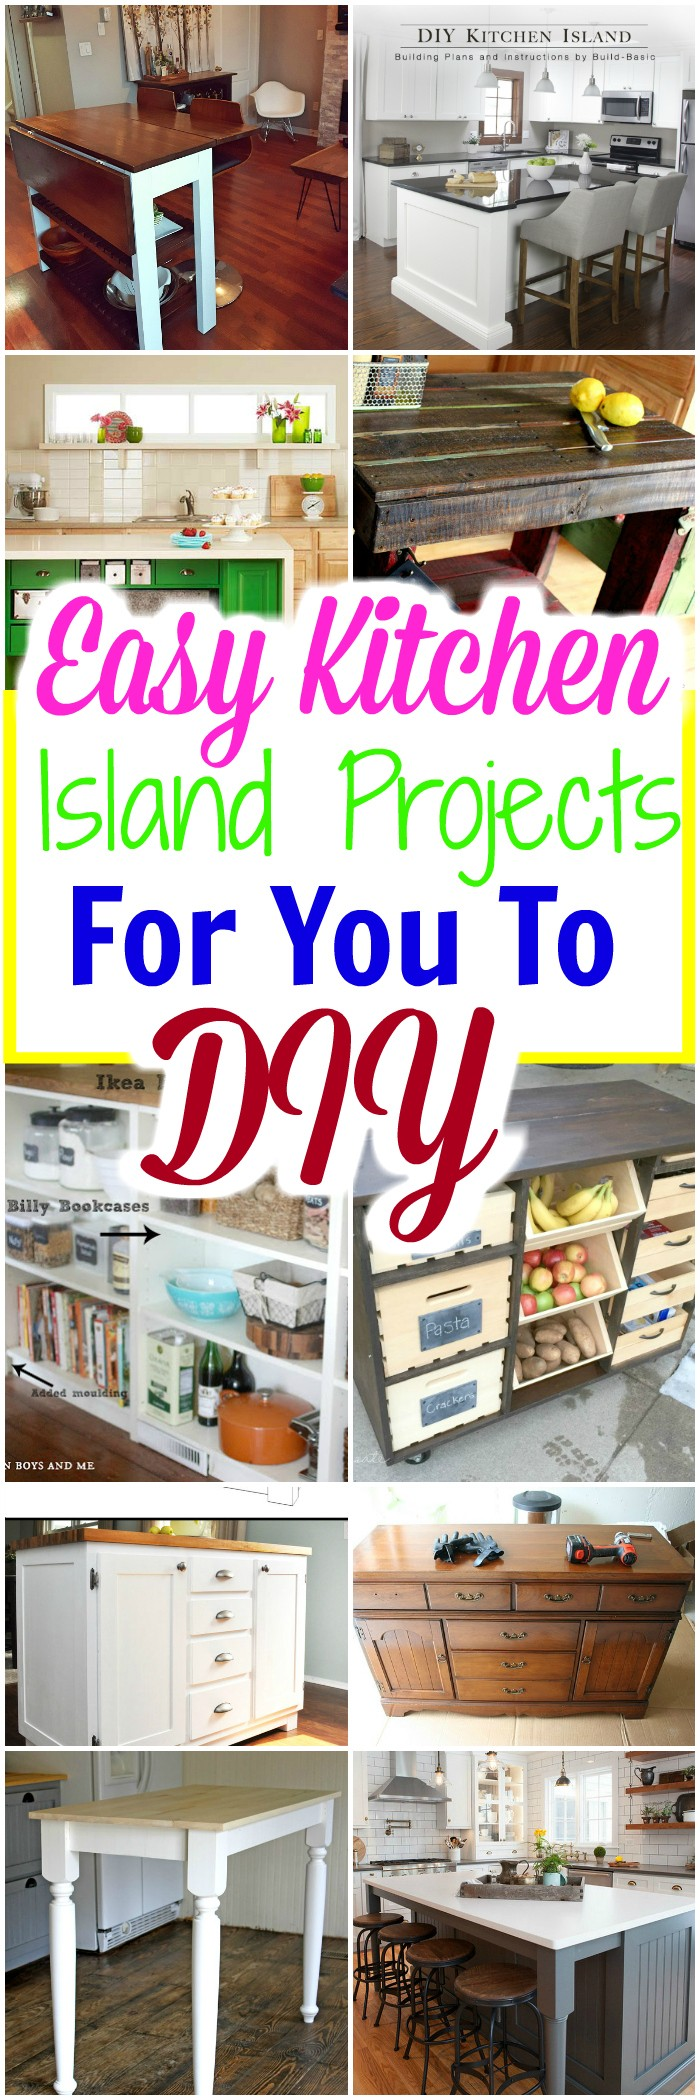 easy kitchen island easy kitchen island projects for you to diy diy home decor 11532